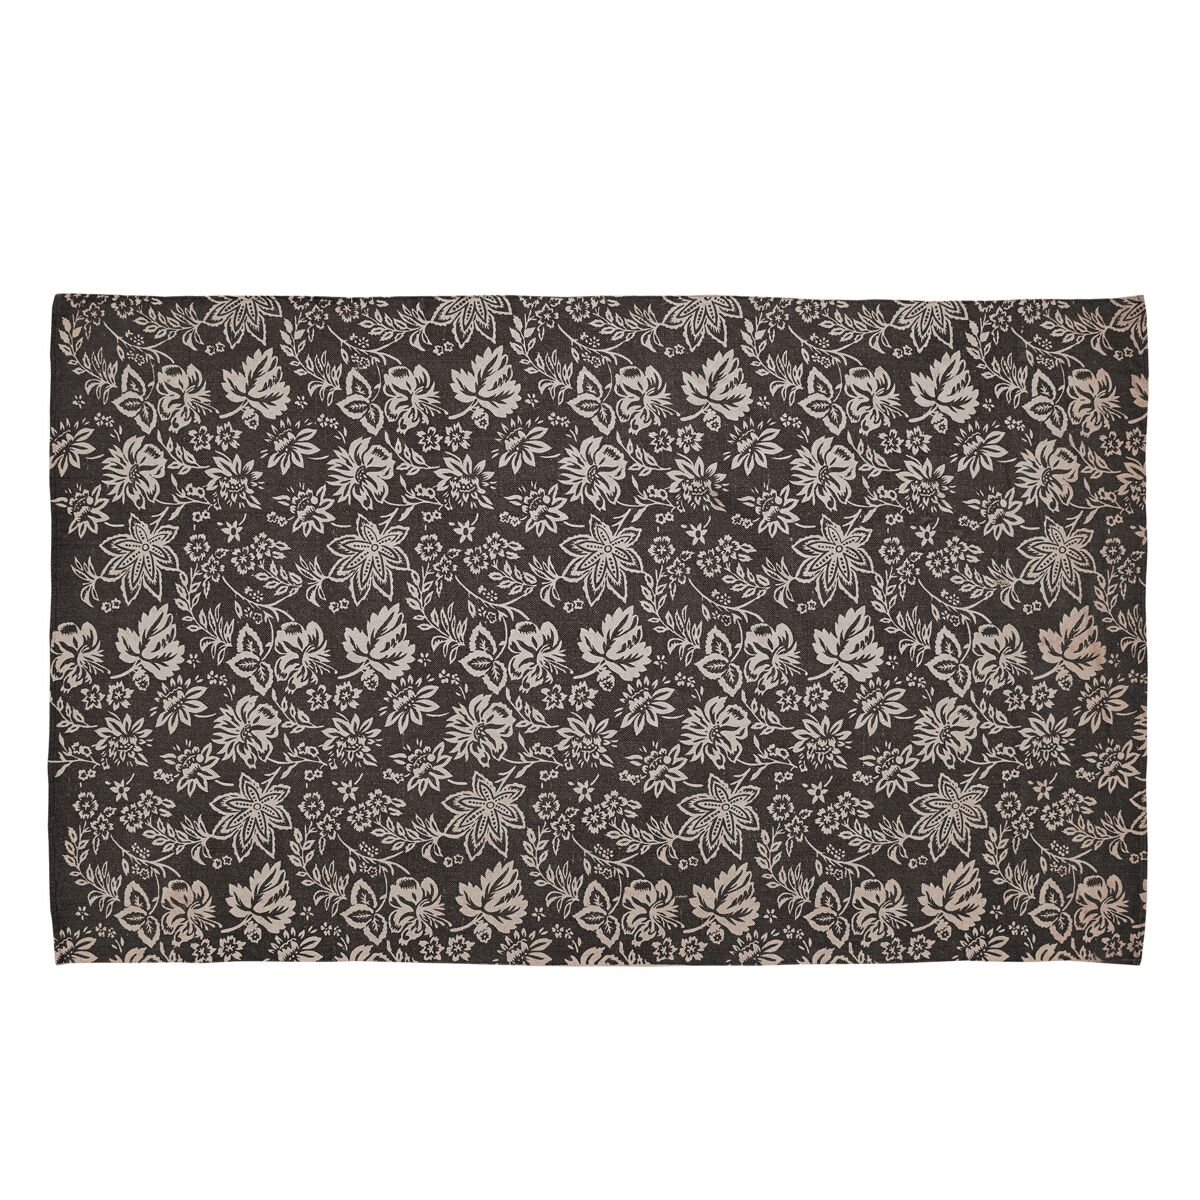 Messina Charcoal Area Rug Rug Size: 5' x 8'